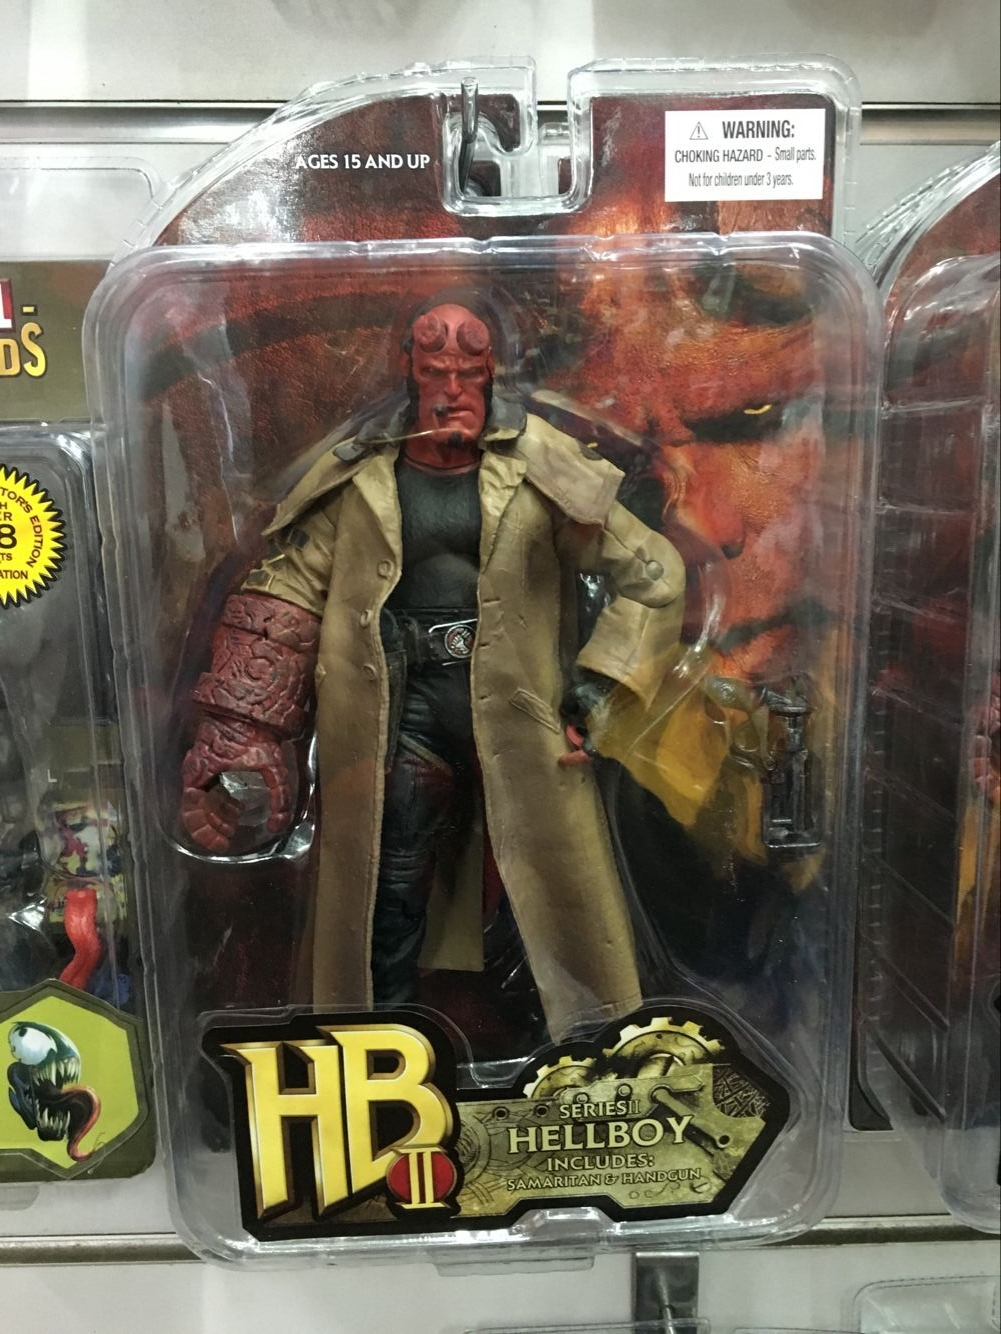 MEZCO Hellboy 2 Styles PVC Action Figure Collectible Model Toy 7 18cm KT3641 mezco hellboy doll with weapons pvc action figure collectible model toy 8 20cm kt3643